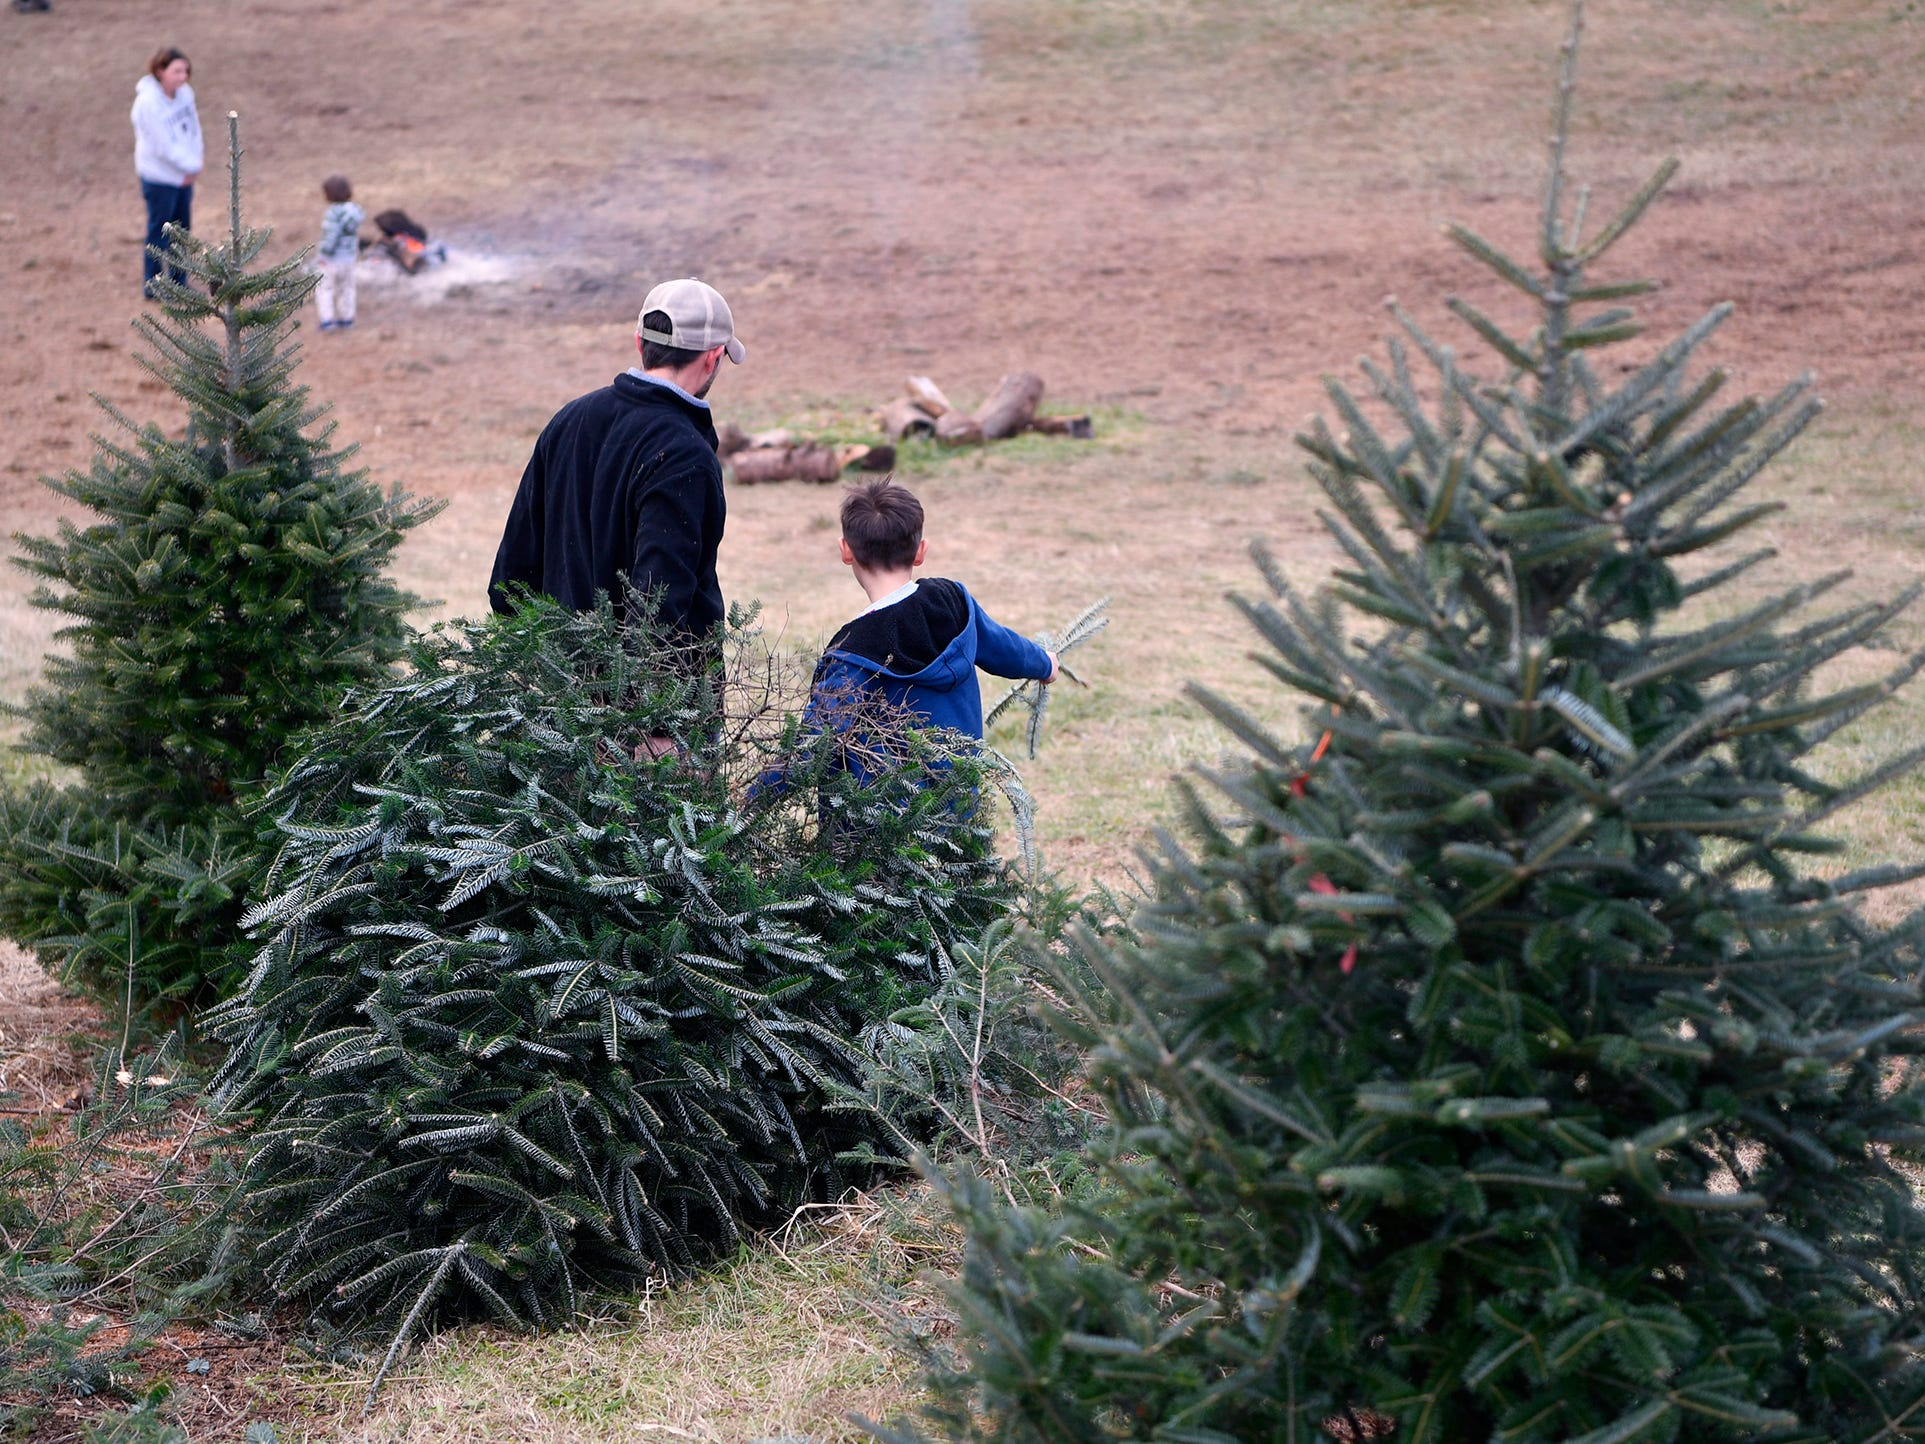 Brandon Kuykendall and his son River, 7, of Mechanicsburg drag their freshly cut Christmas tree to be picked up by tractor at McCurdy's Tree Farm in Dillsburg,  Monday, December 3, 2018. 